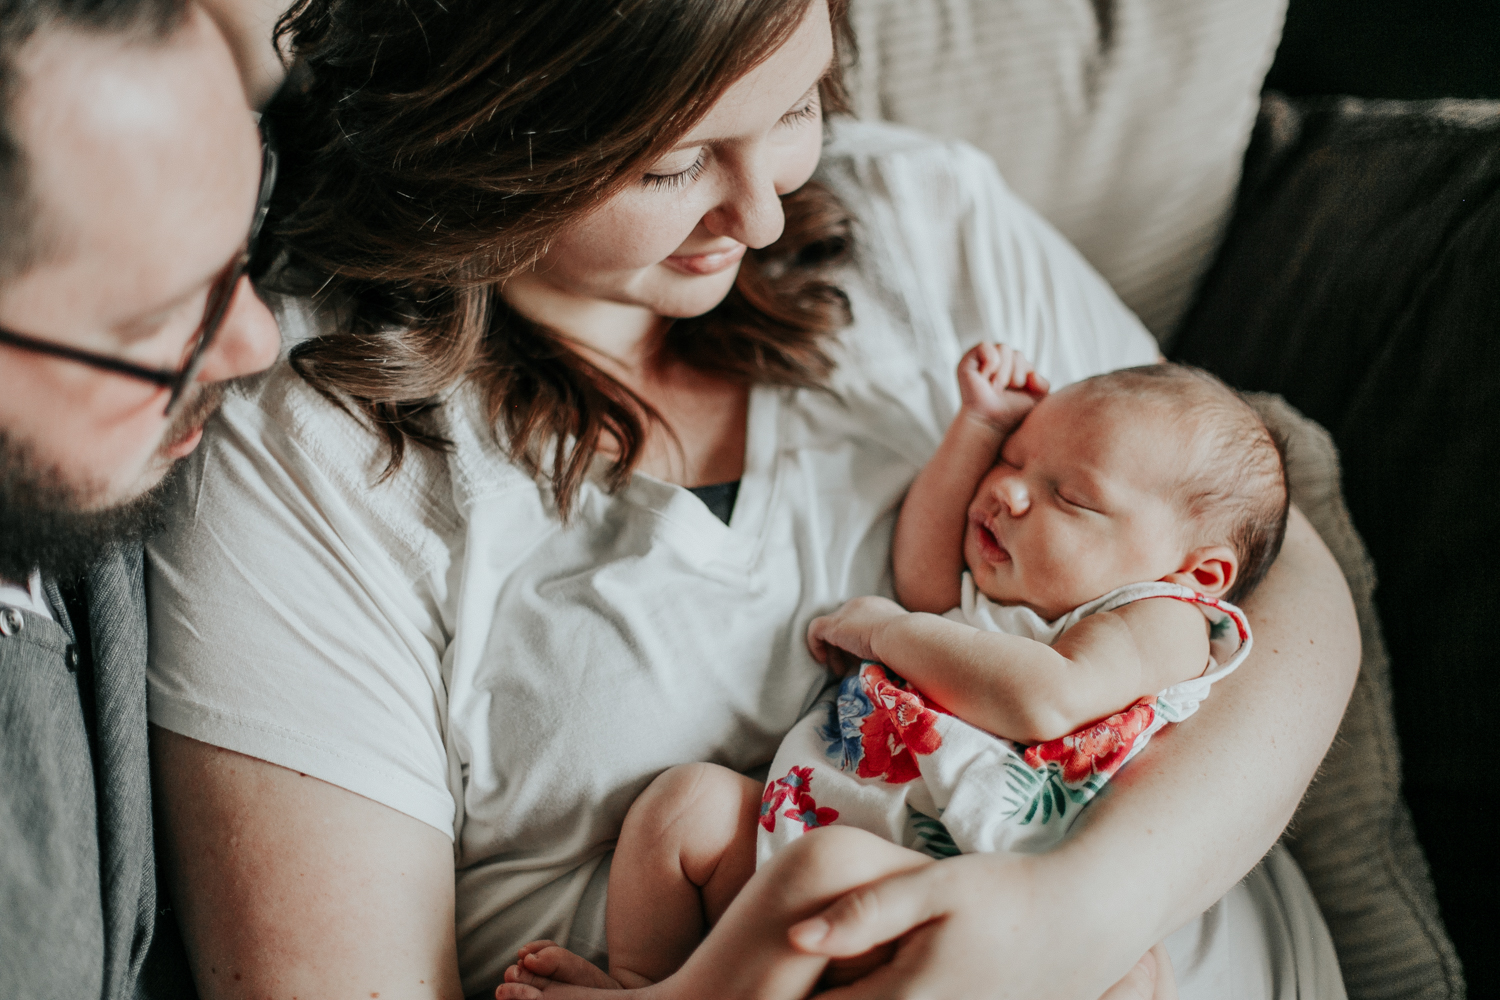 lethbridge-photographer-love-and-be-loved-photography-newborn-birth-ella-photo-image-picture-54.jpg